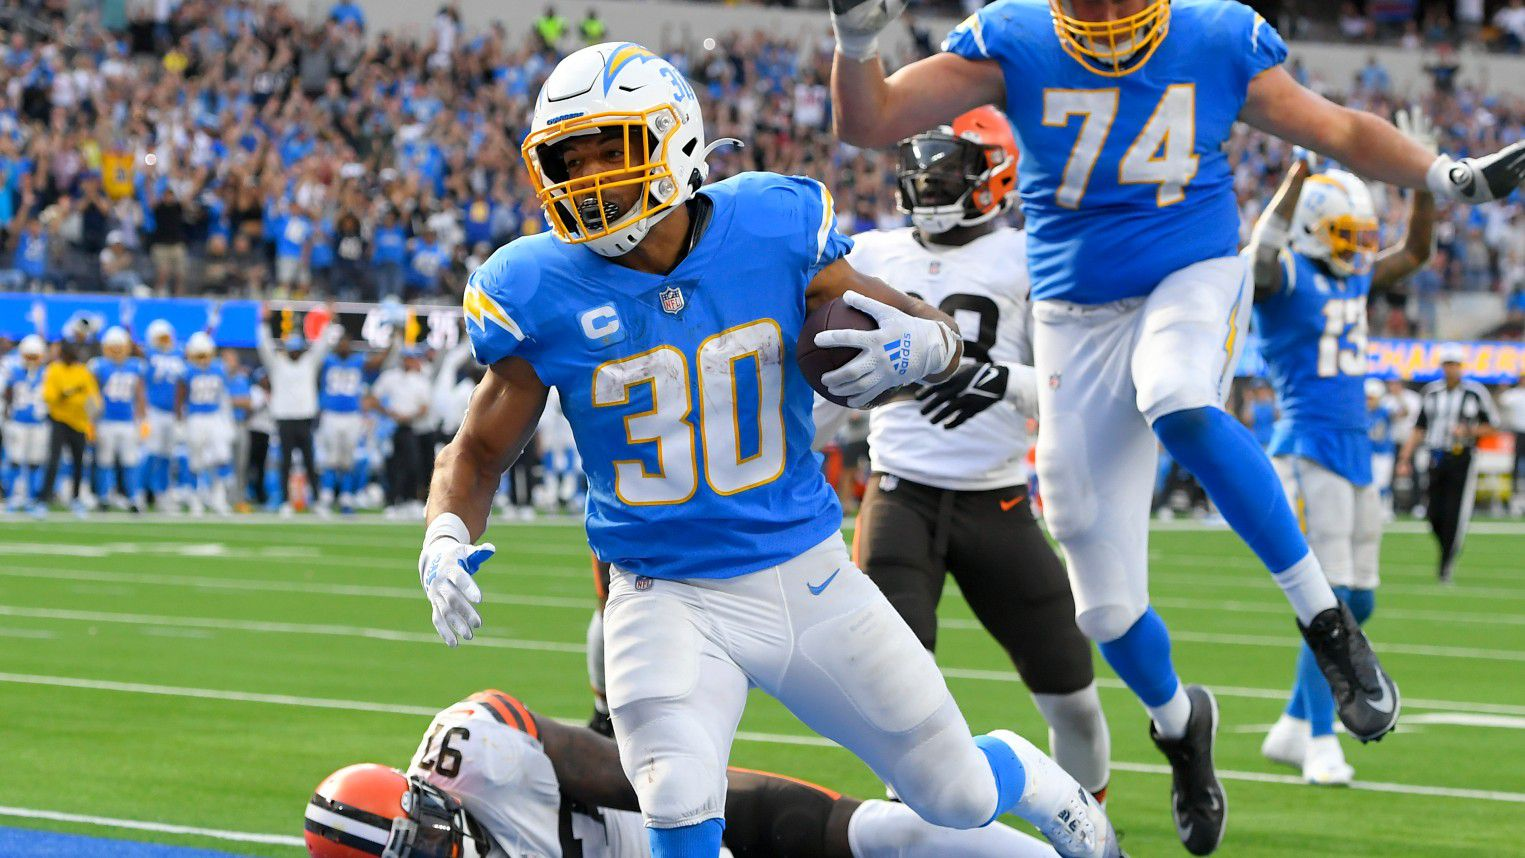 Los Angeles Chargers score accidental touchdown in win